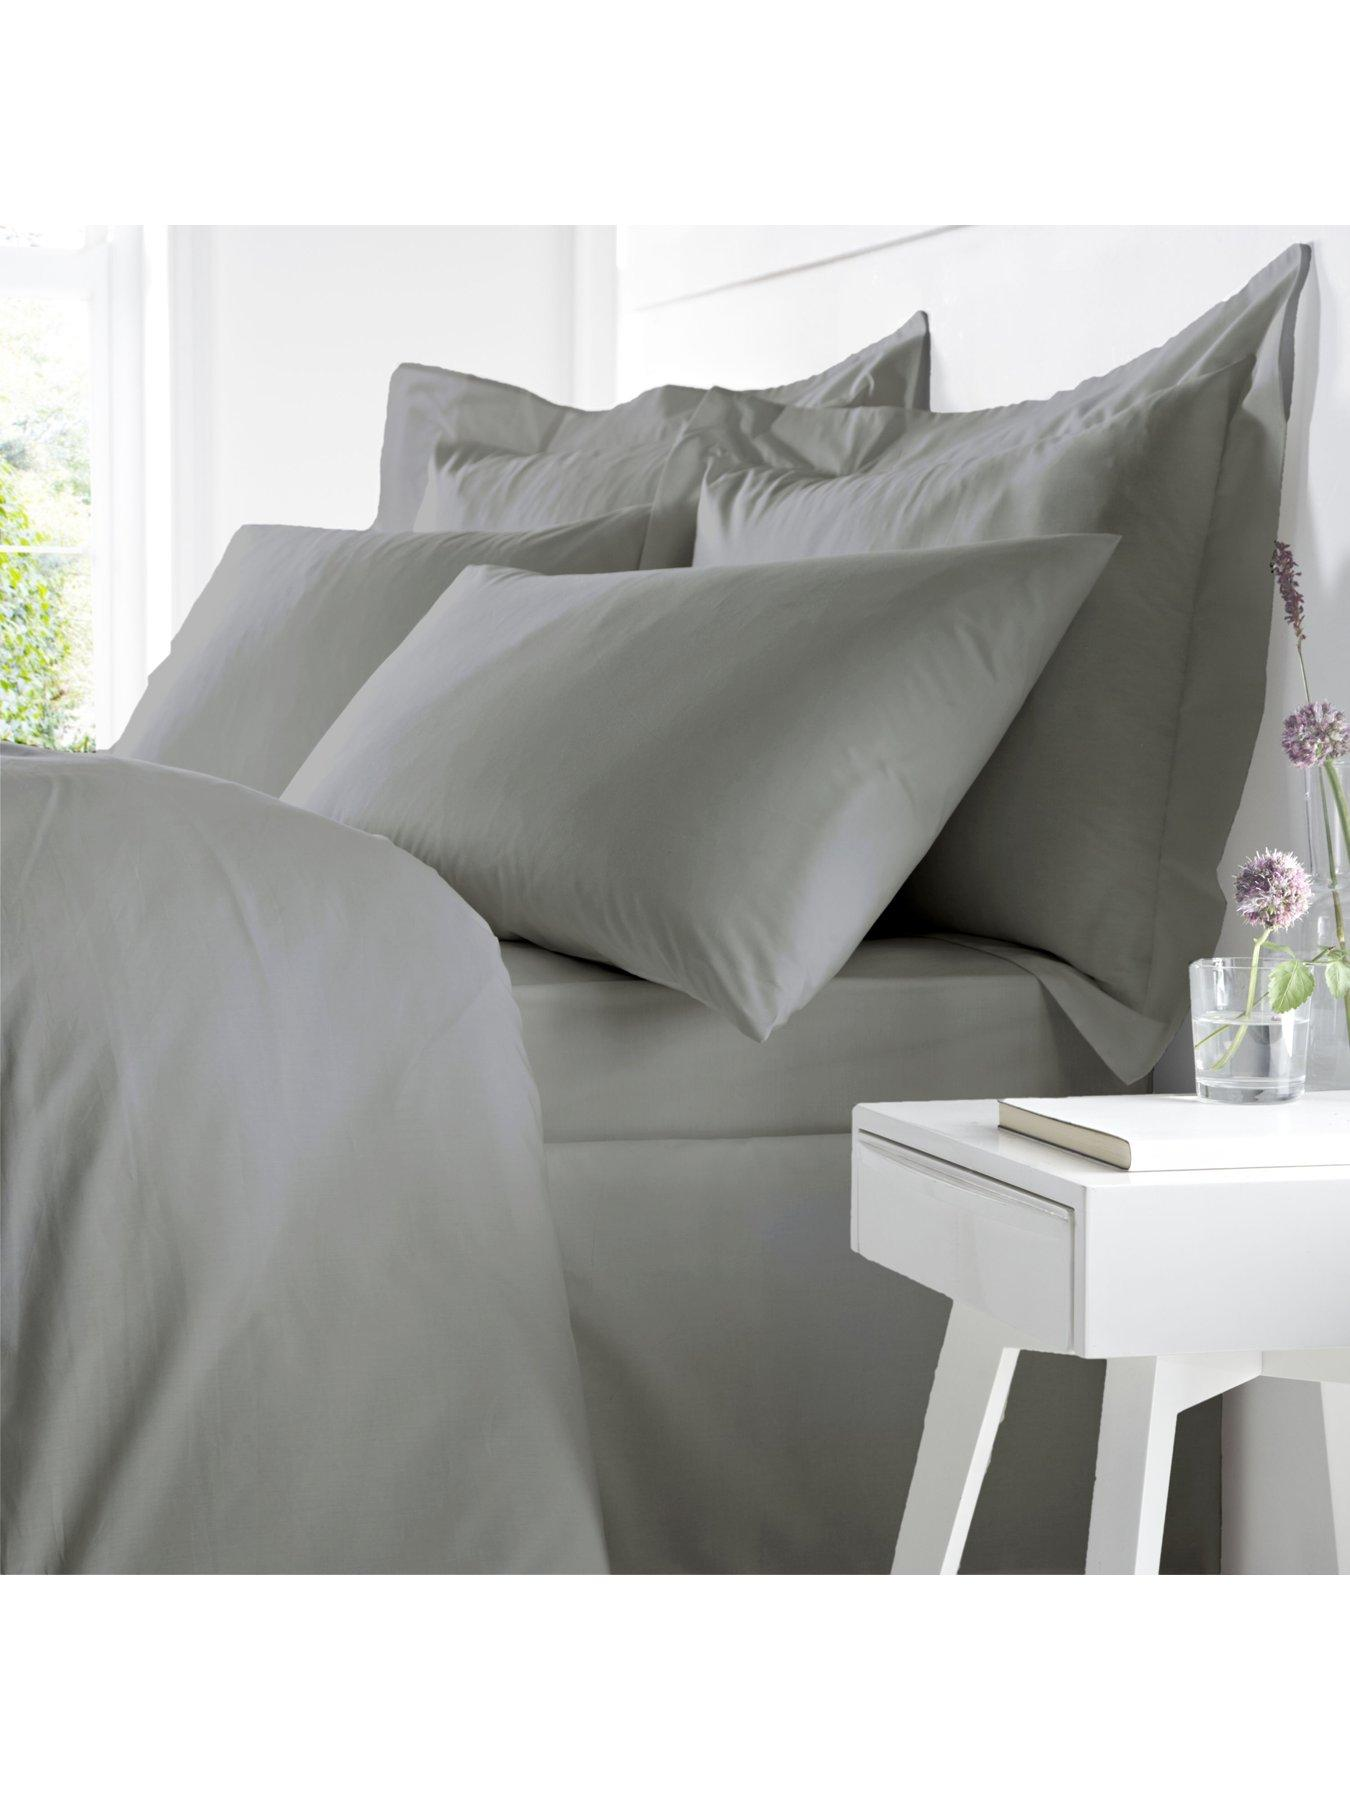 HUGO BOSS Cotton Satin Fitted Bedsheet 150//200cm King Size